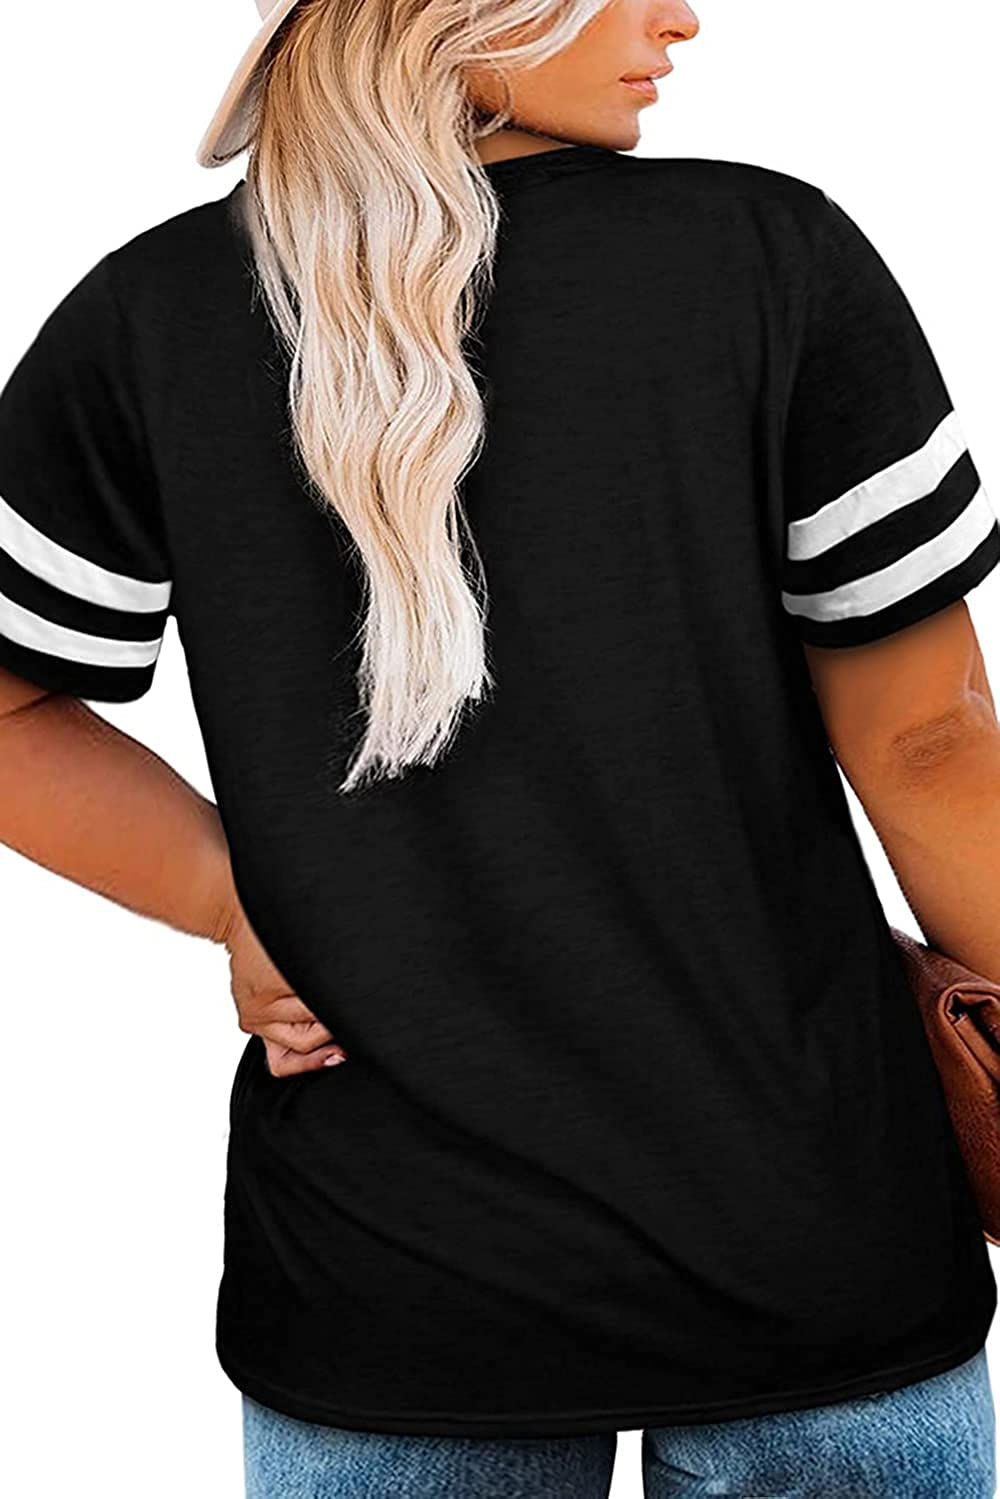 CARROTMOB Womens Plus Size Tops Summer Short Sleeve T Casual Loose Tunic V Neck Tee Shirts 1X-5X